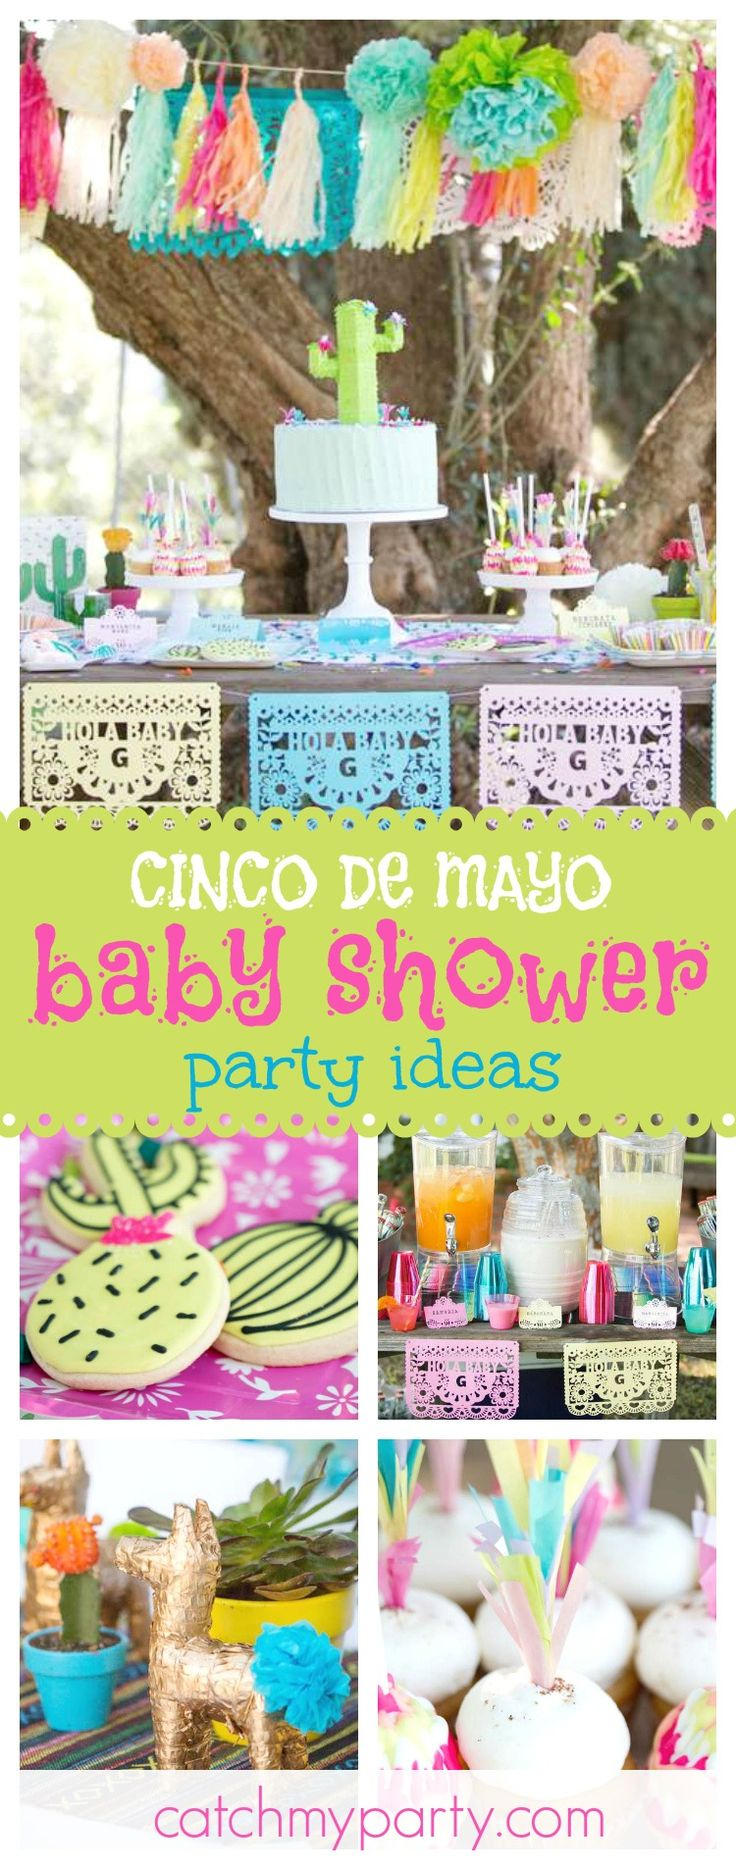 Celebrate Cinco de Mayo with an incredible mexican garden party. The cake is amazing!! See more party ideas and share yours at CatchMyParty.com